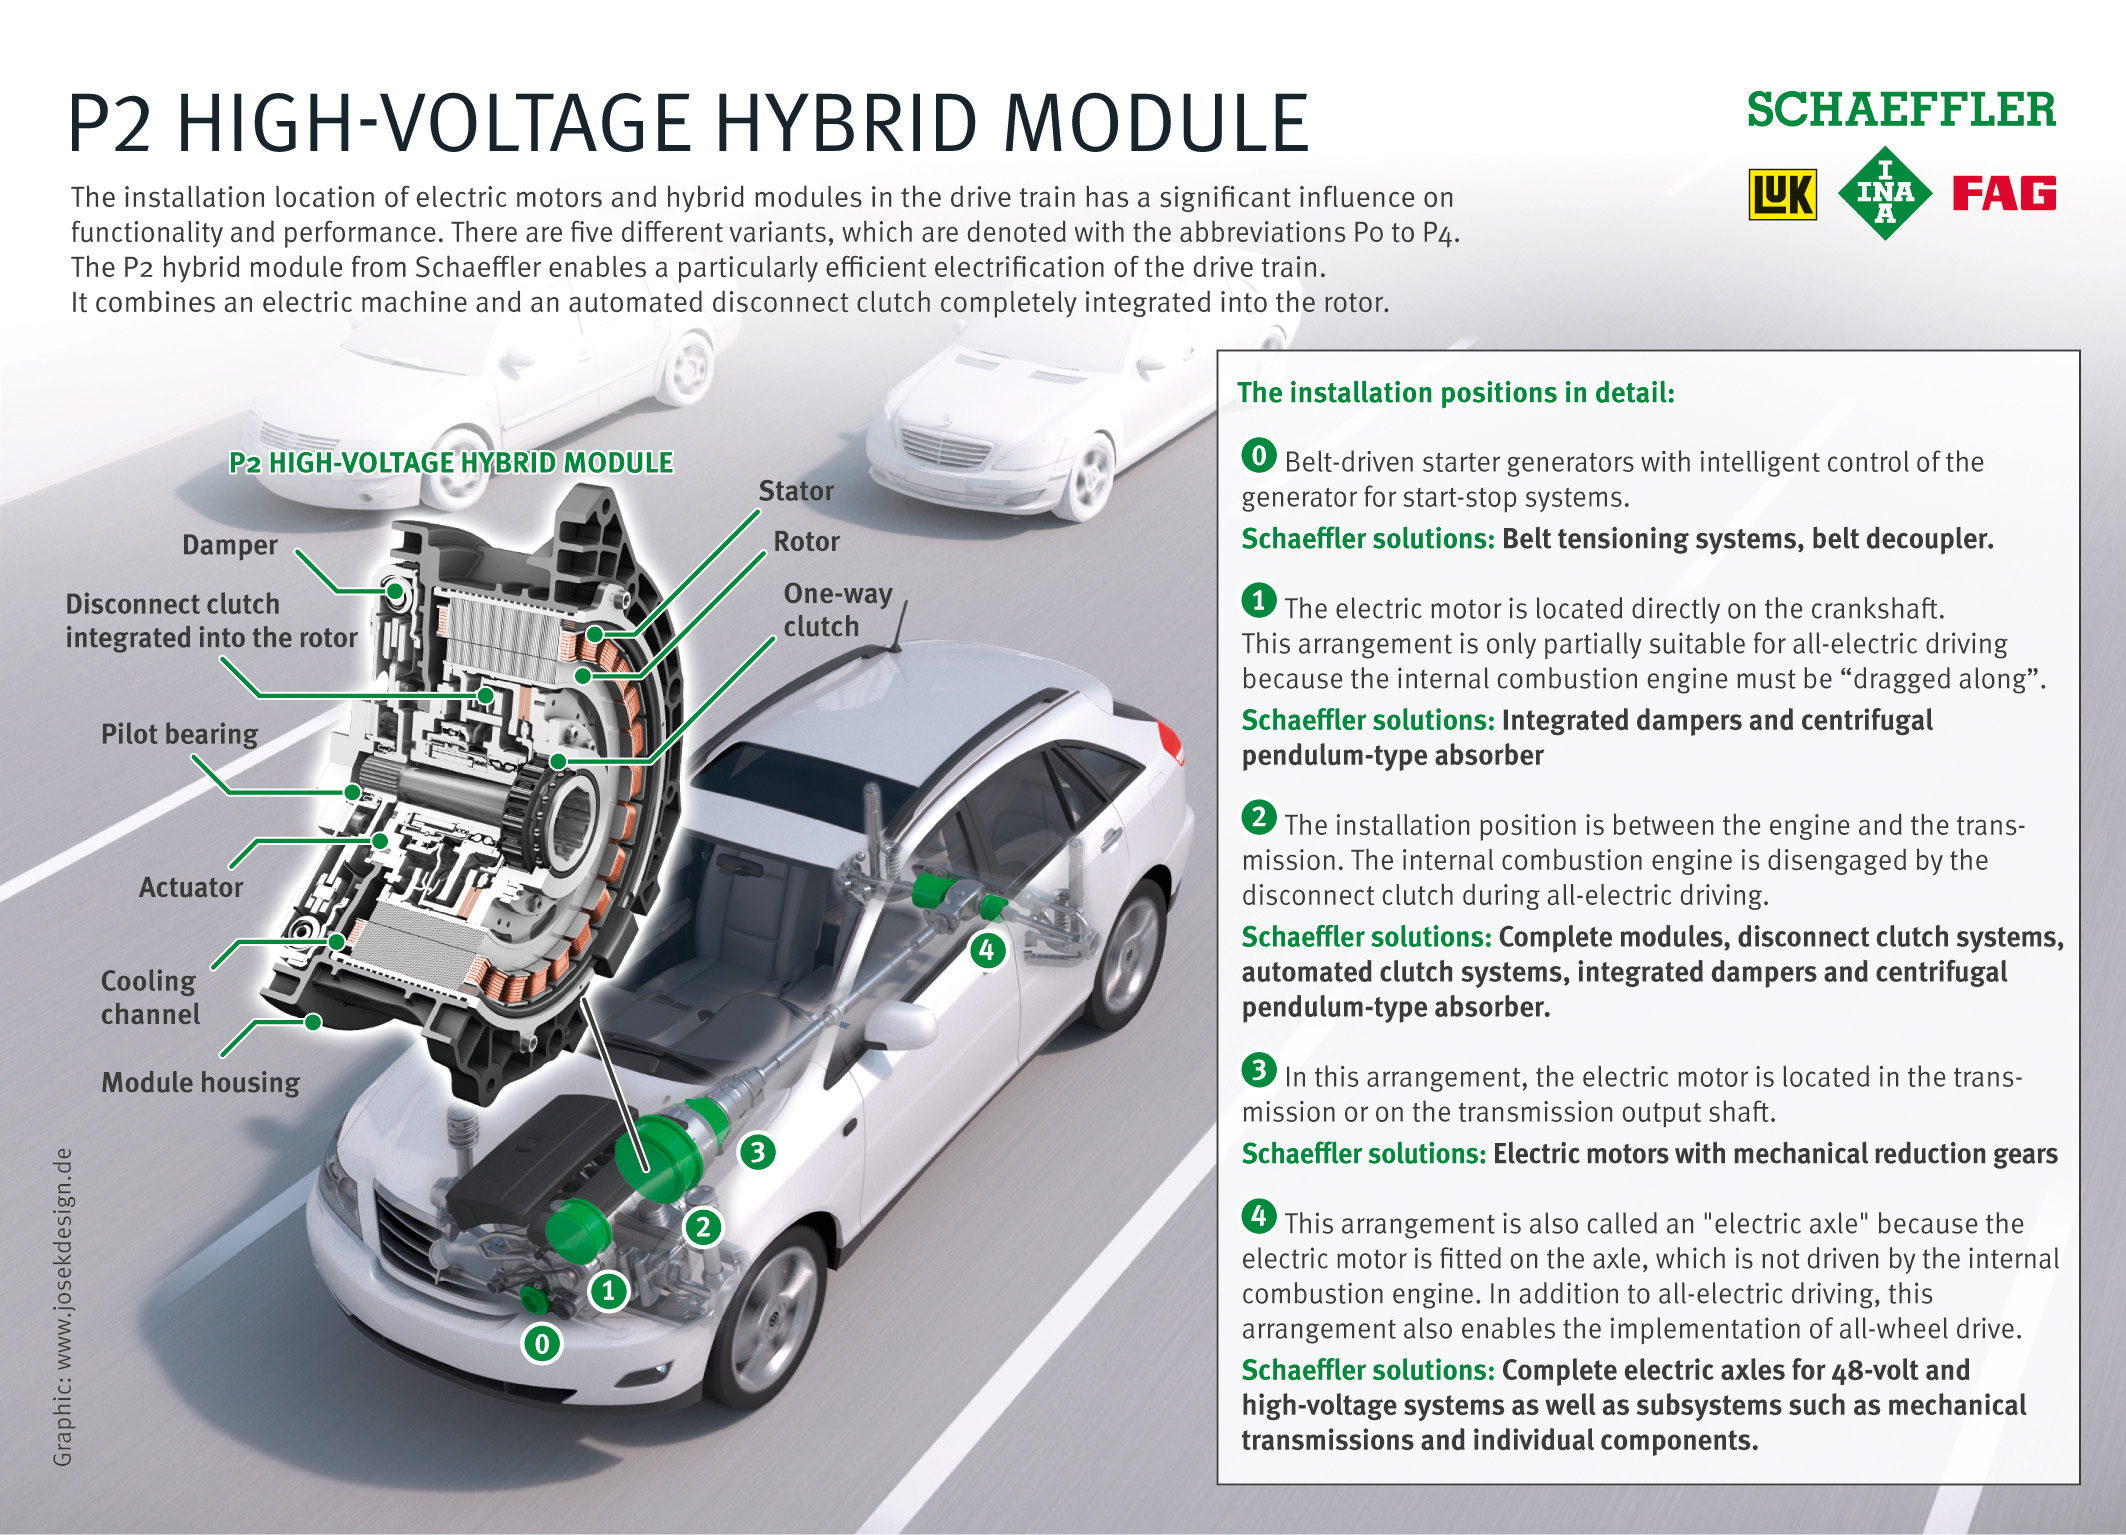 P2 high-voltage hybrid module infographic